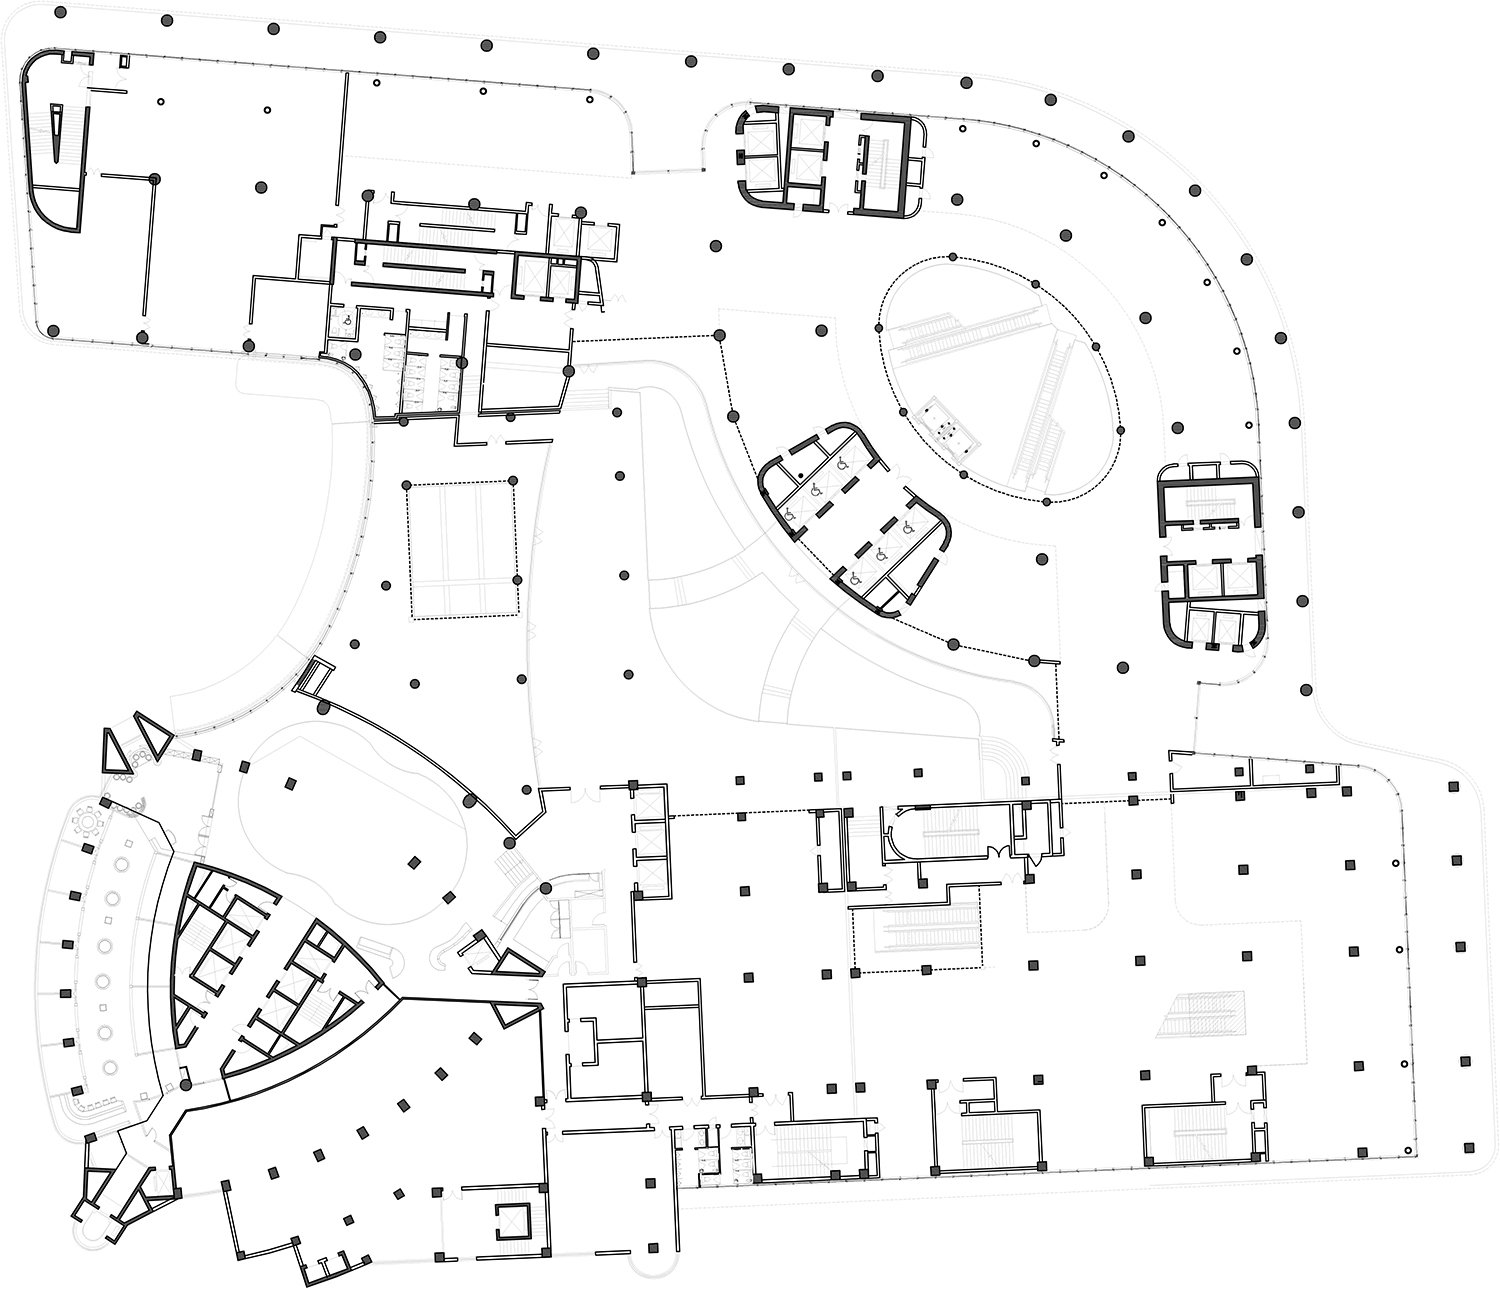 Second Floor Plan The Architectural Design & Research Institute of Zhejiang University; Architects von Gerkan, Marg and Partners (gmp)}